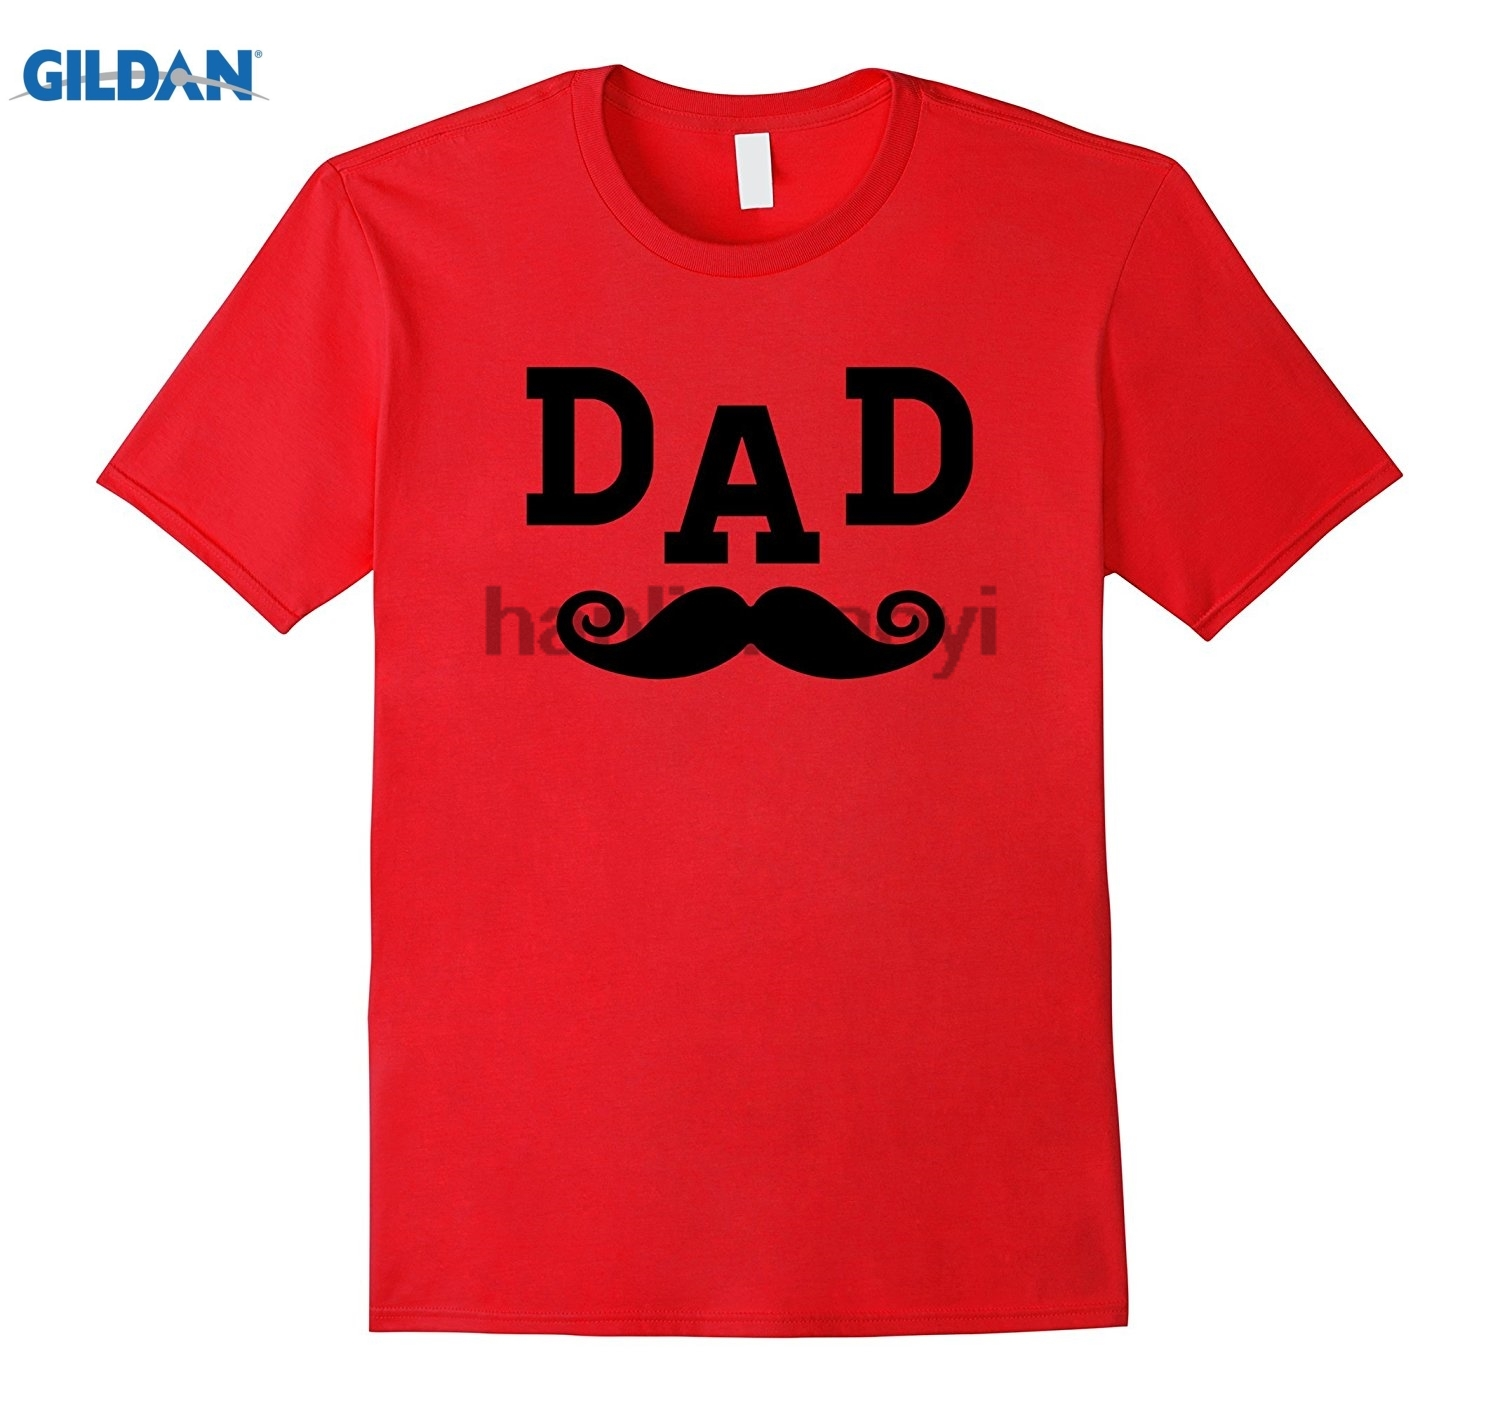 GILDAN Mens Fathers Day T-Shirt Great Gift Idea Mustache Dad Shirt